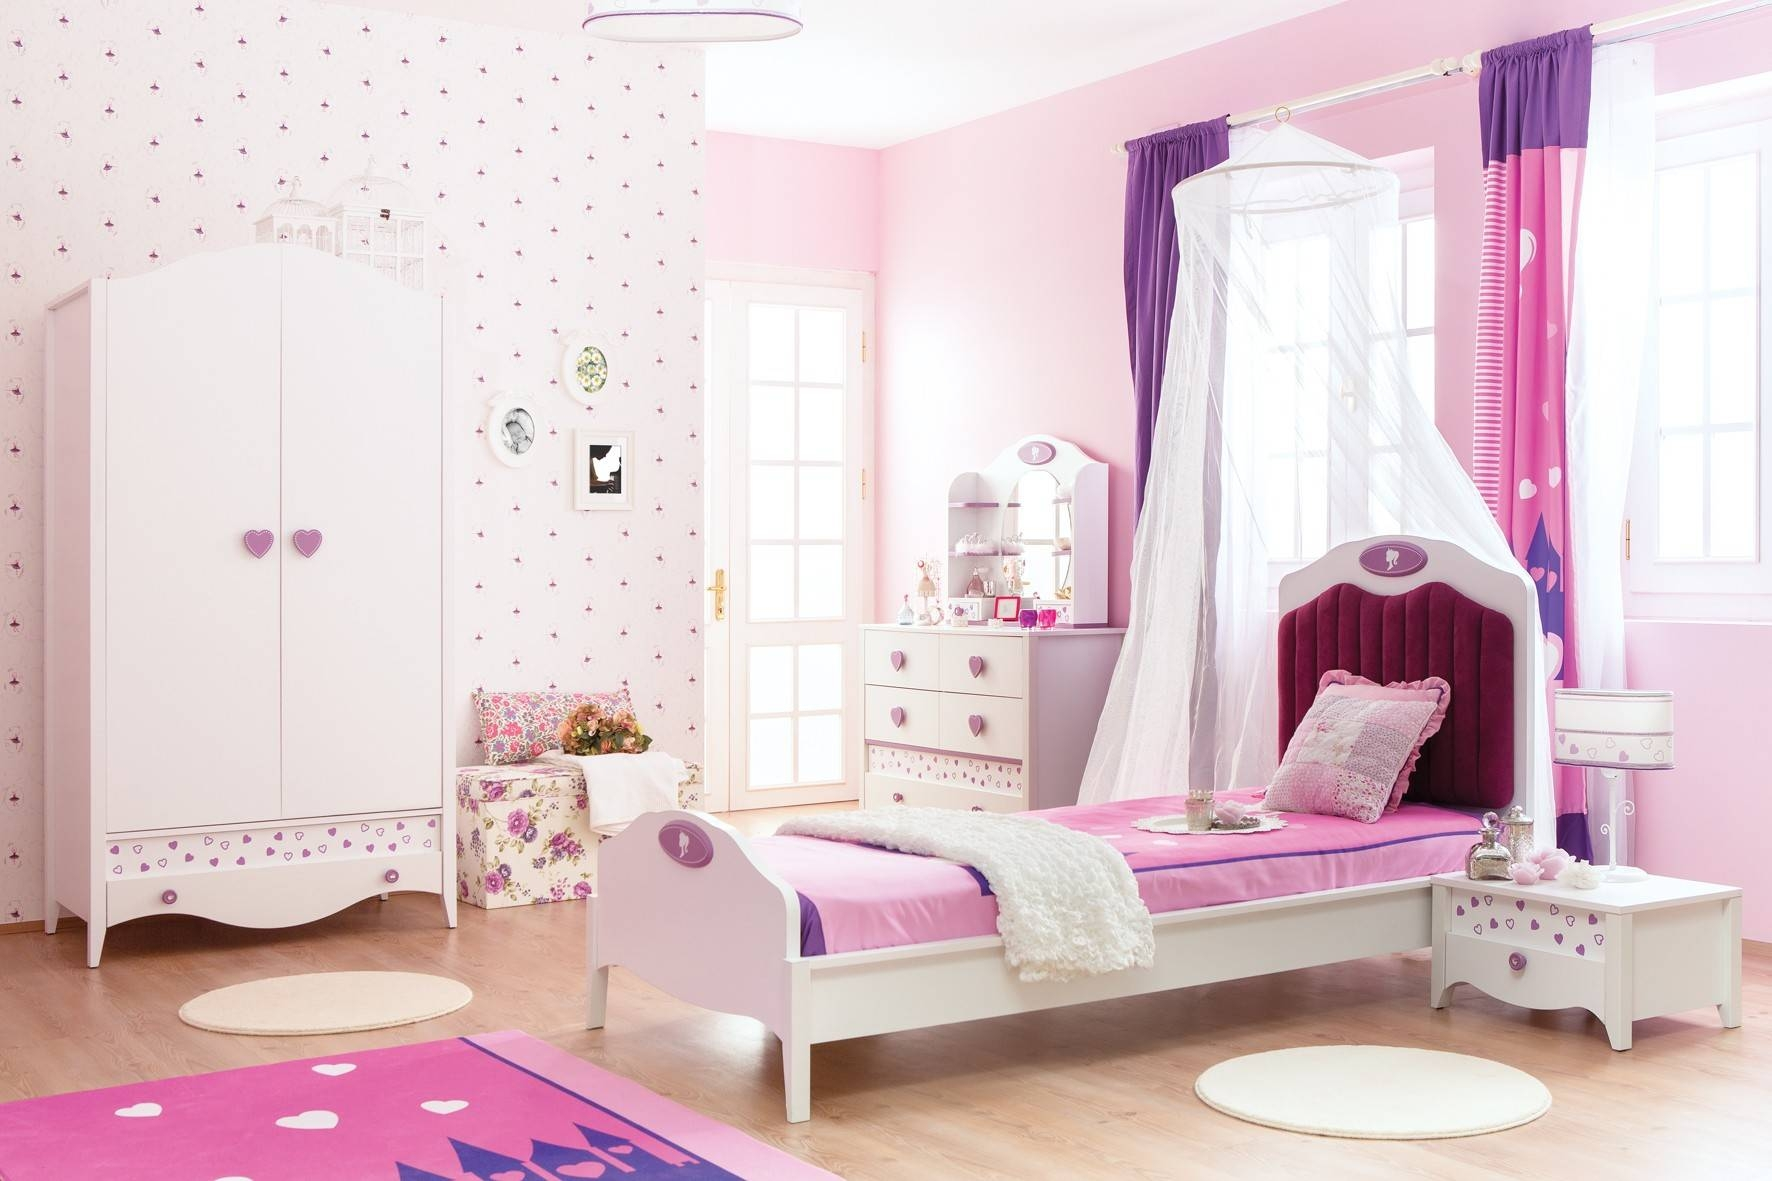 Newjoy Princess Children's 2 Door Wardrobe throughout Childrens Pink Wardrobes (Image 19 of 30)